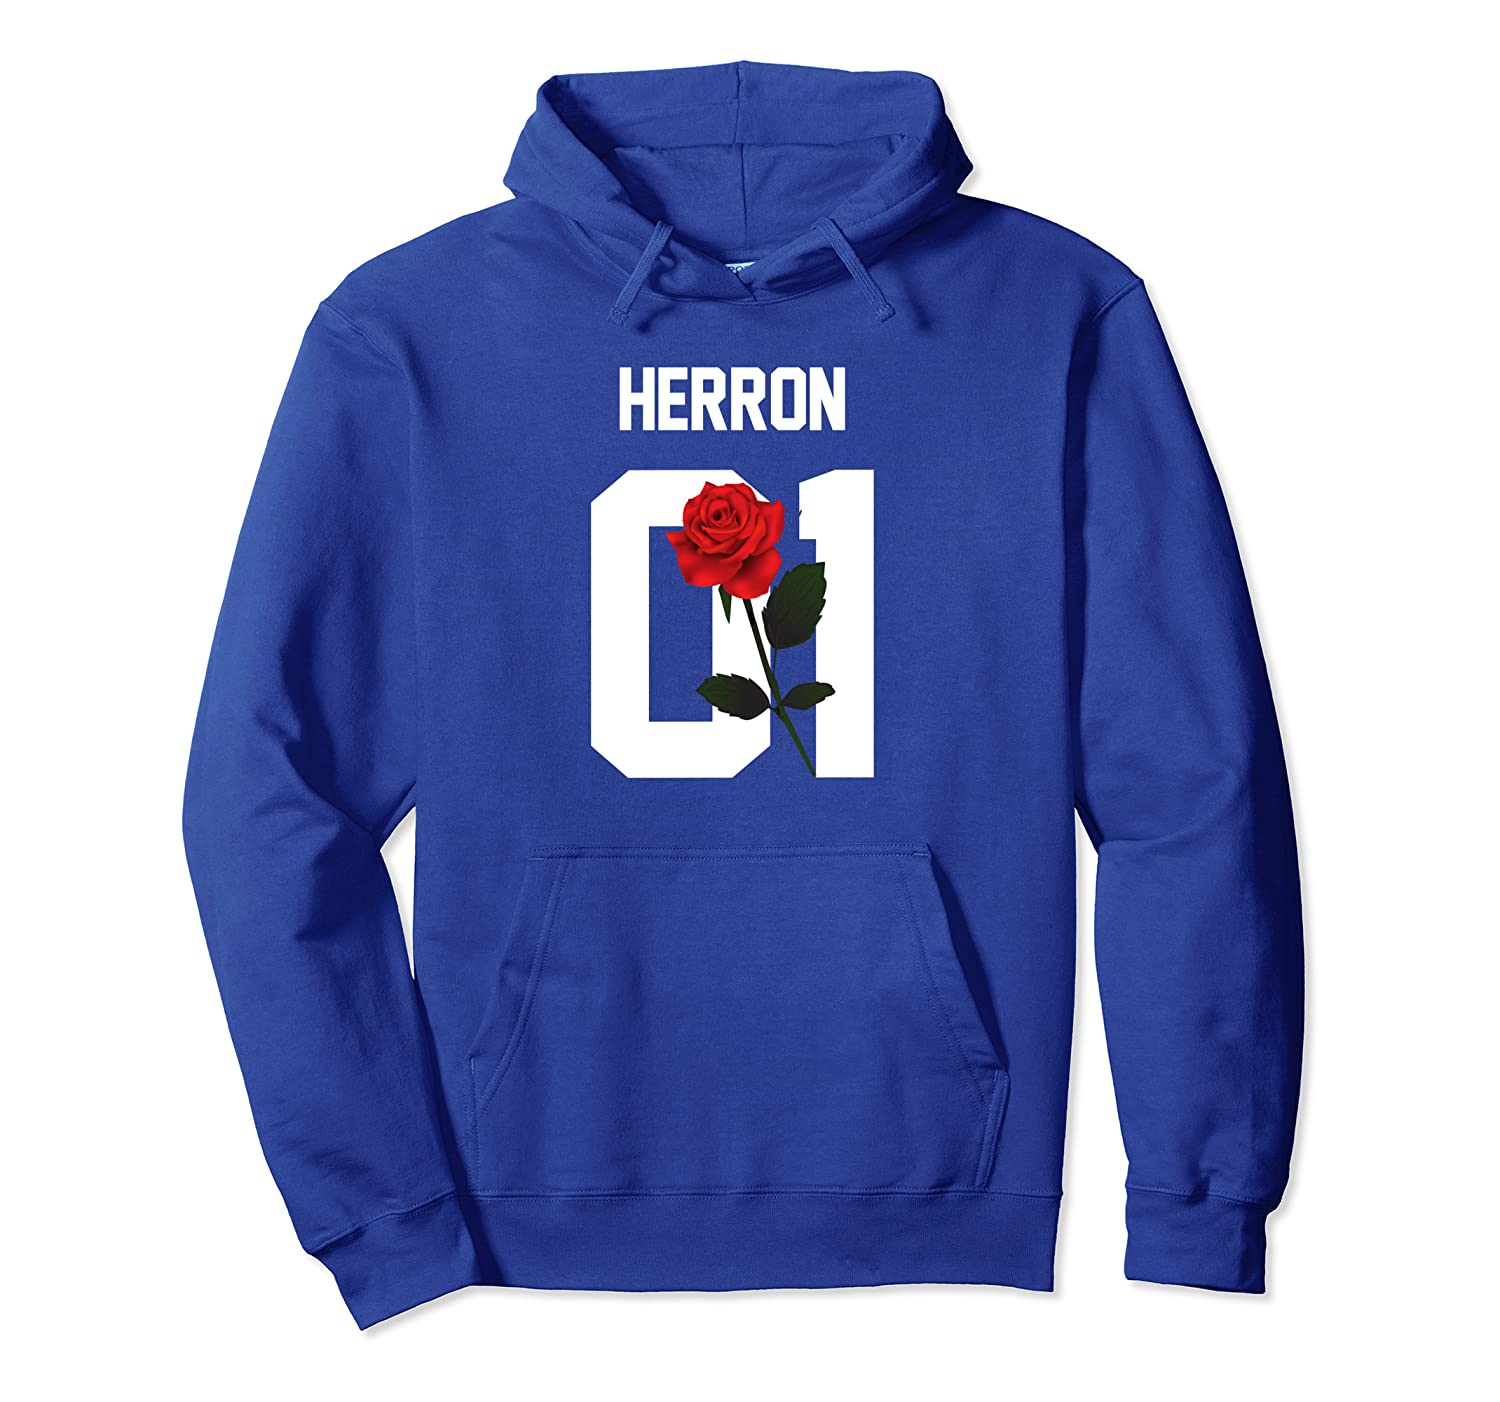 Why Merchandise Don't Red Rose We Zach Herron For Girls Mens Pullover Hoodie-TH